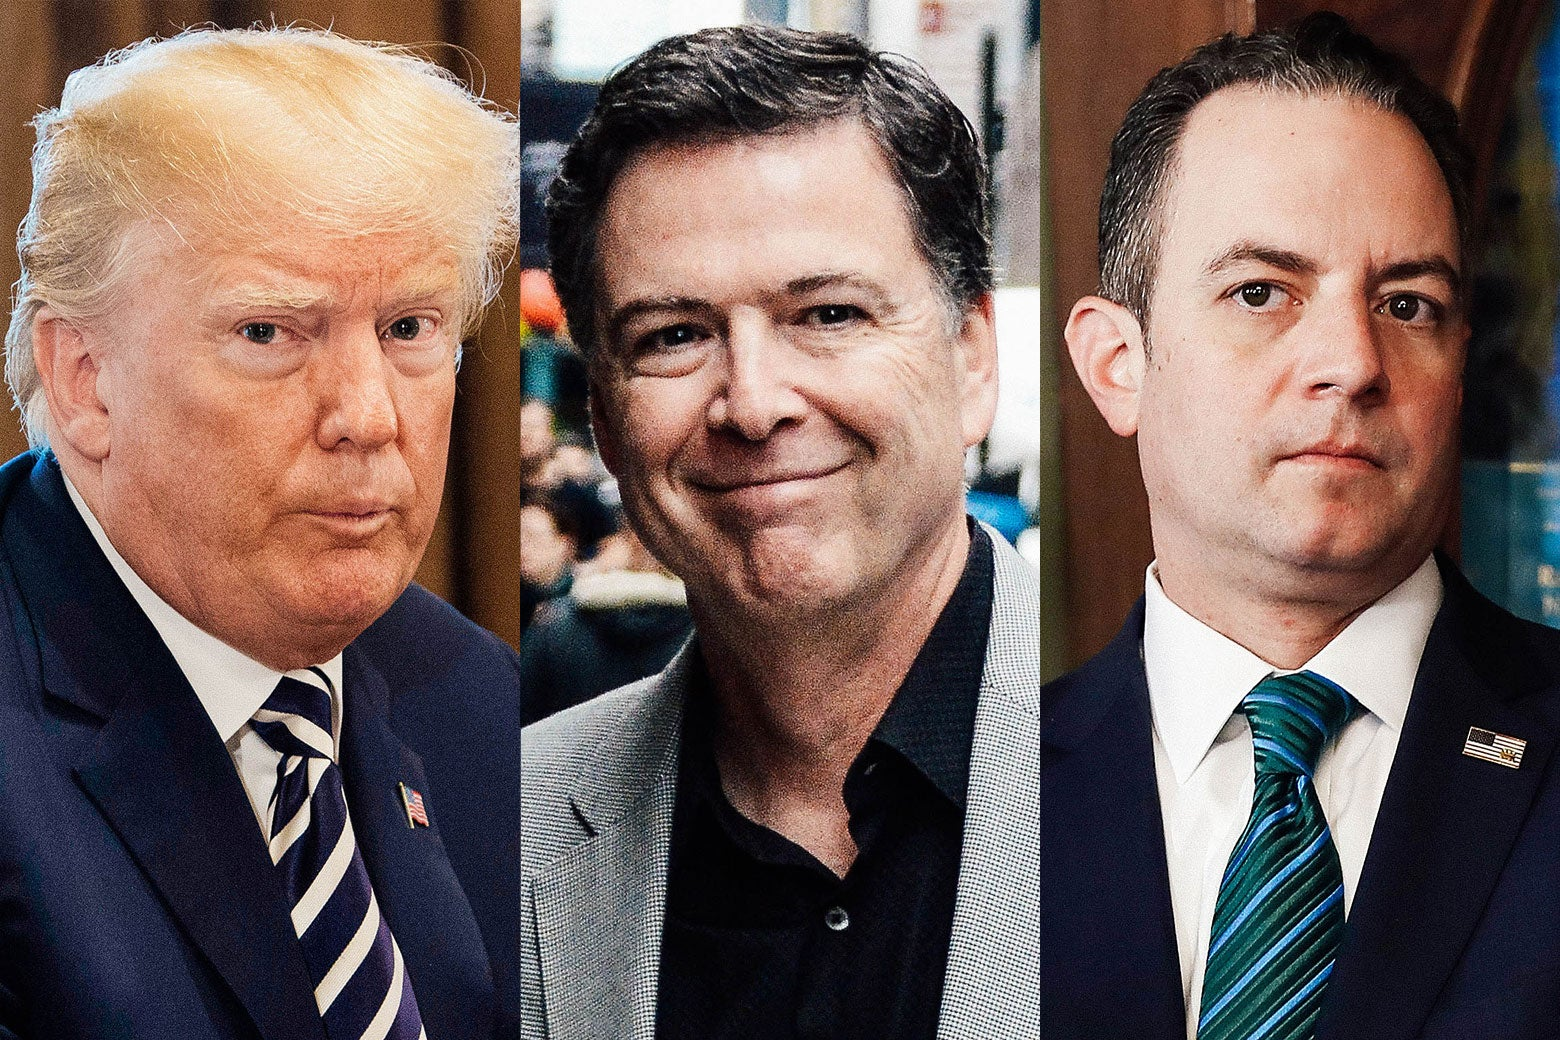 Donald Trump, James Comey, and Reince Priebus side-by-side-by-side.